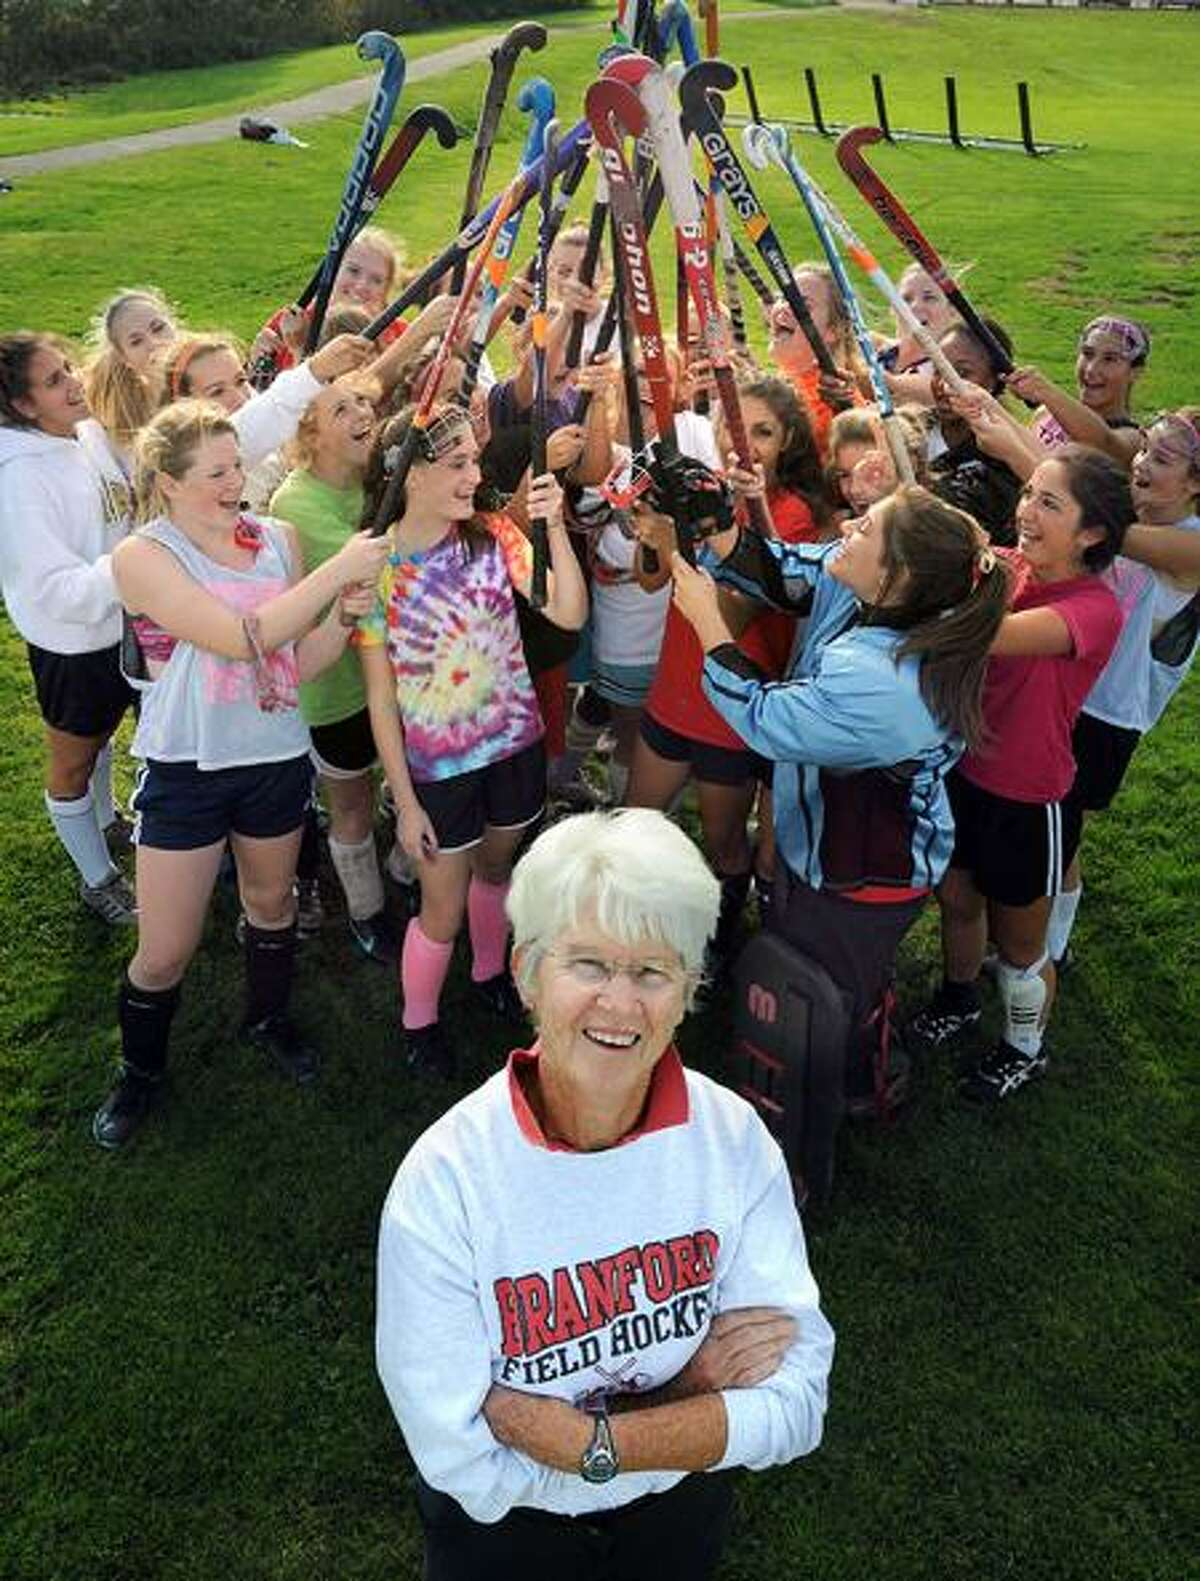 Longtime Branford field hockey coach Cathy McGuirk with her current team. Photo by Mara Lavitt/New Haven Register